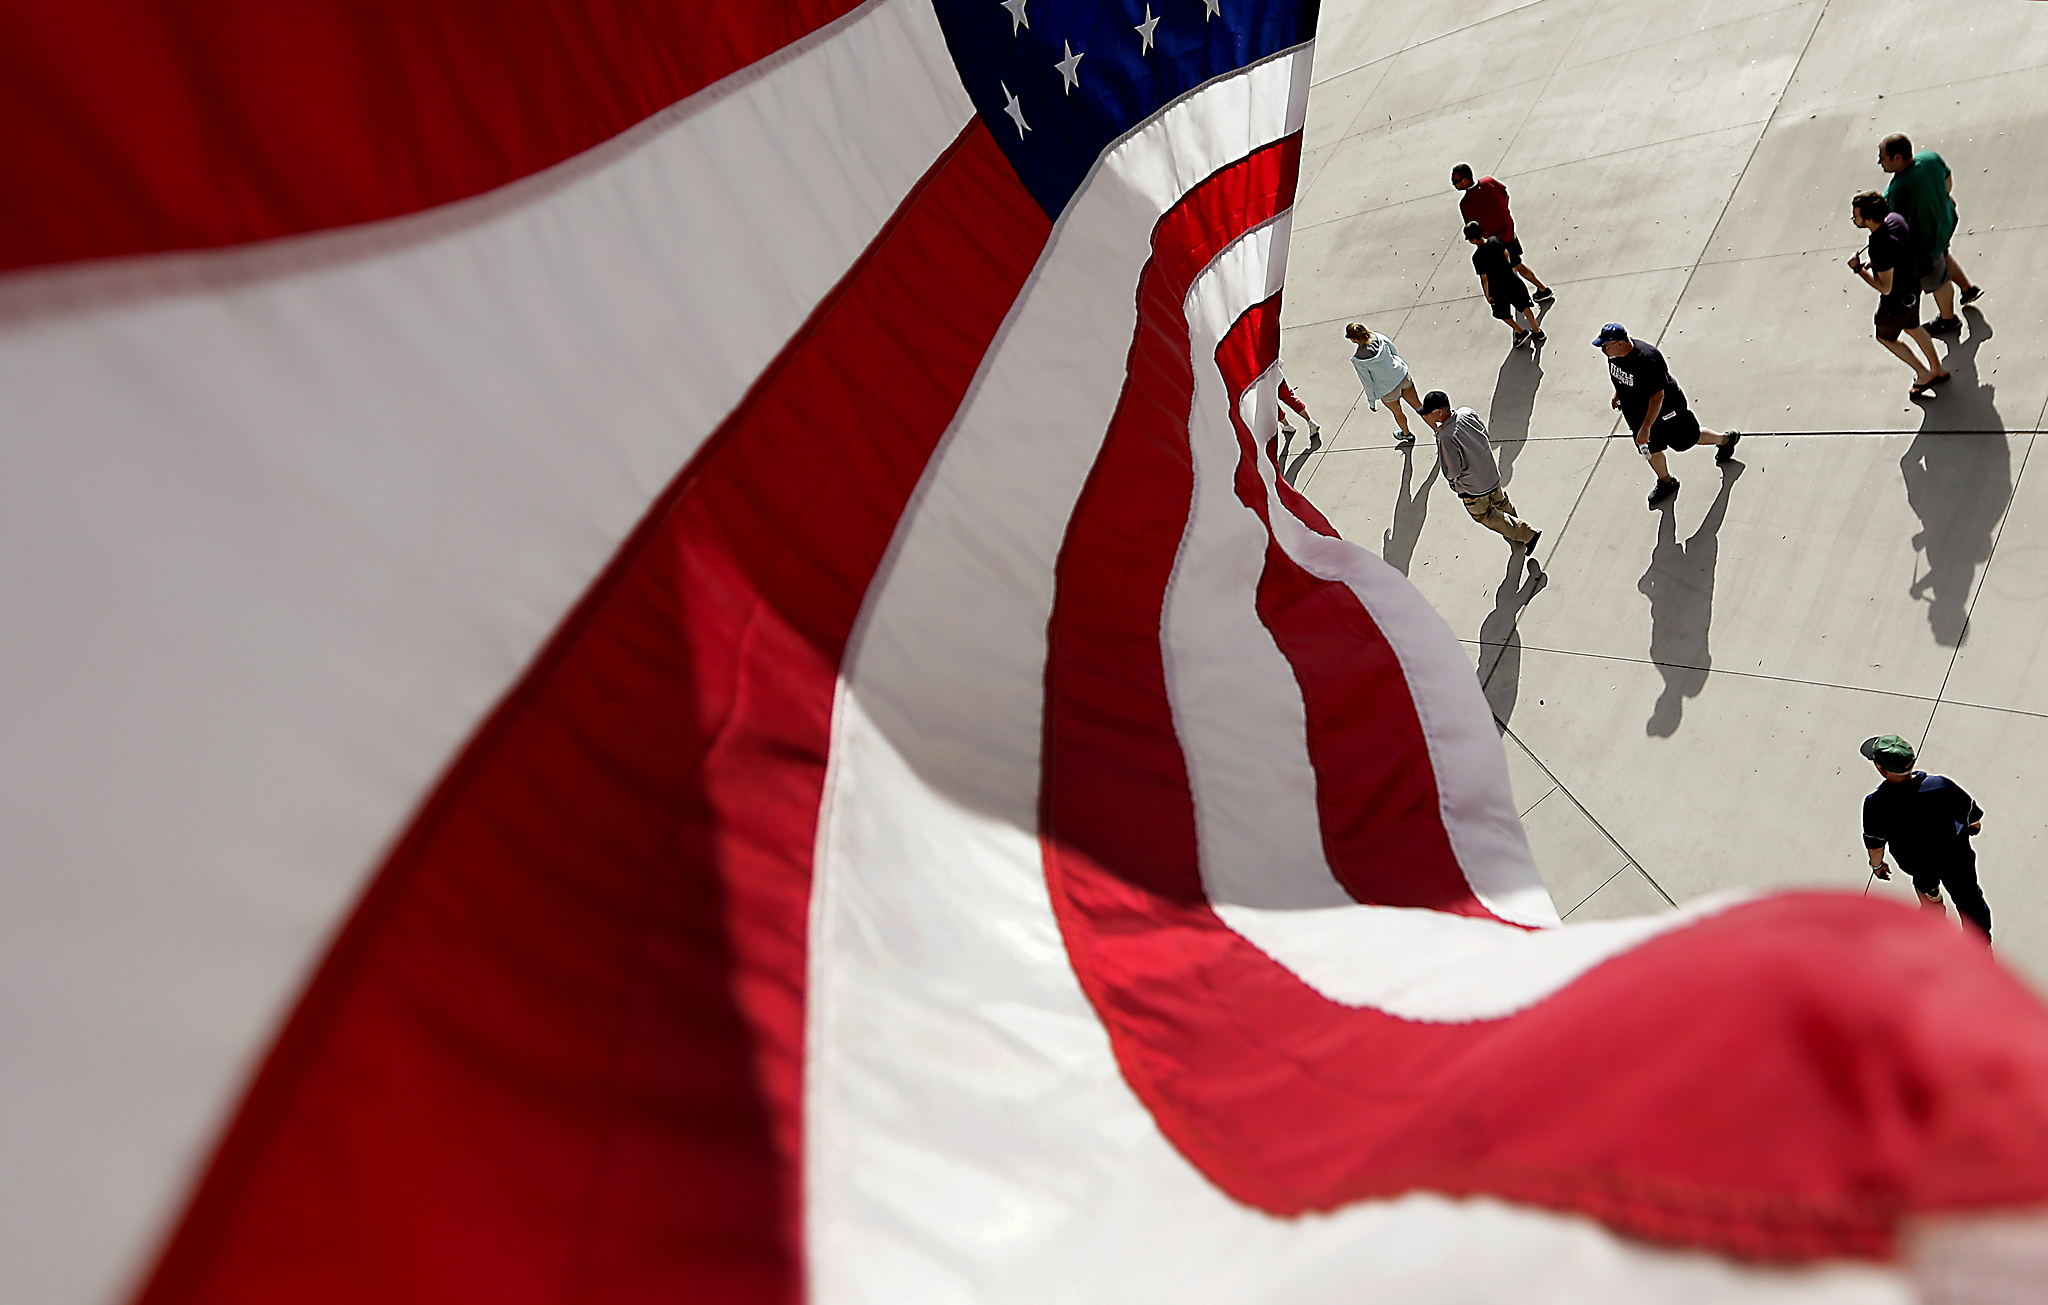 Diamondbacks Mariners Spring Baseball...Fans walk through a concourse under a United States flag during the seventh inning of a spring training baseball game between the Seattle Mariners and the Arizona Diamondbacks, Monday, March 7, 2016, in Peoria, Ariz. (AP Photo/Charlie Riedel)